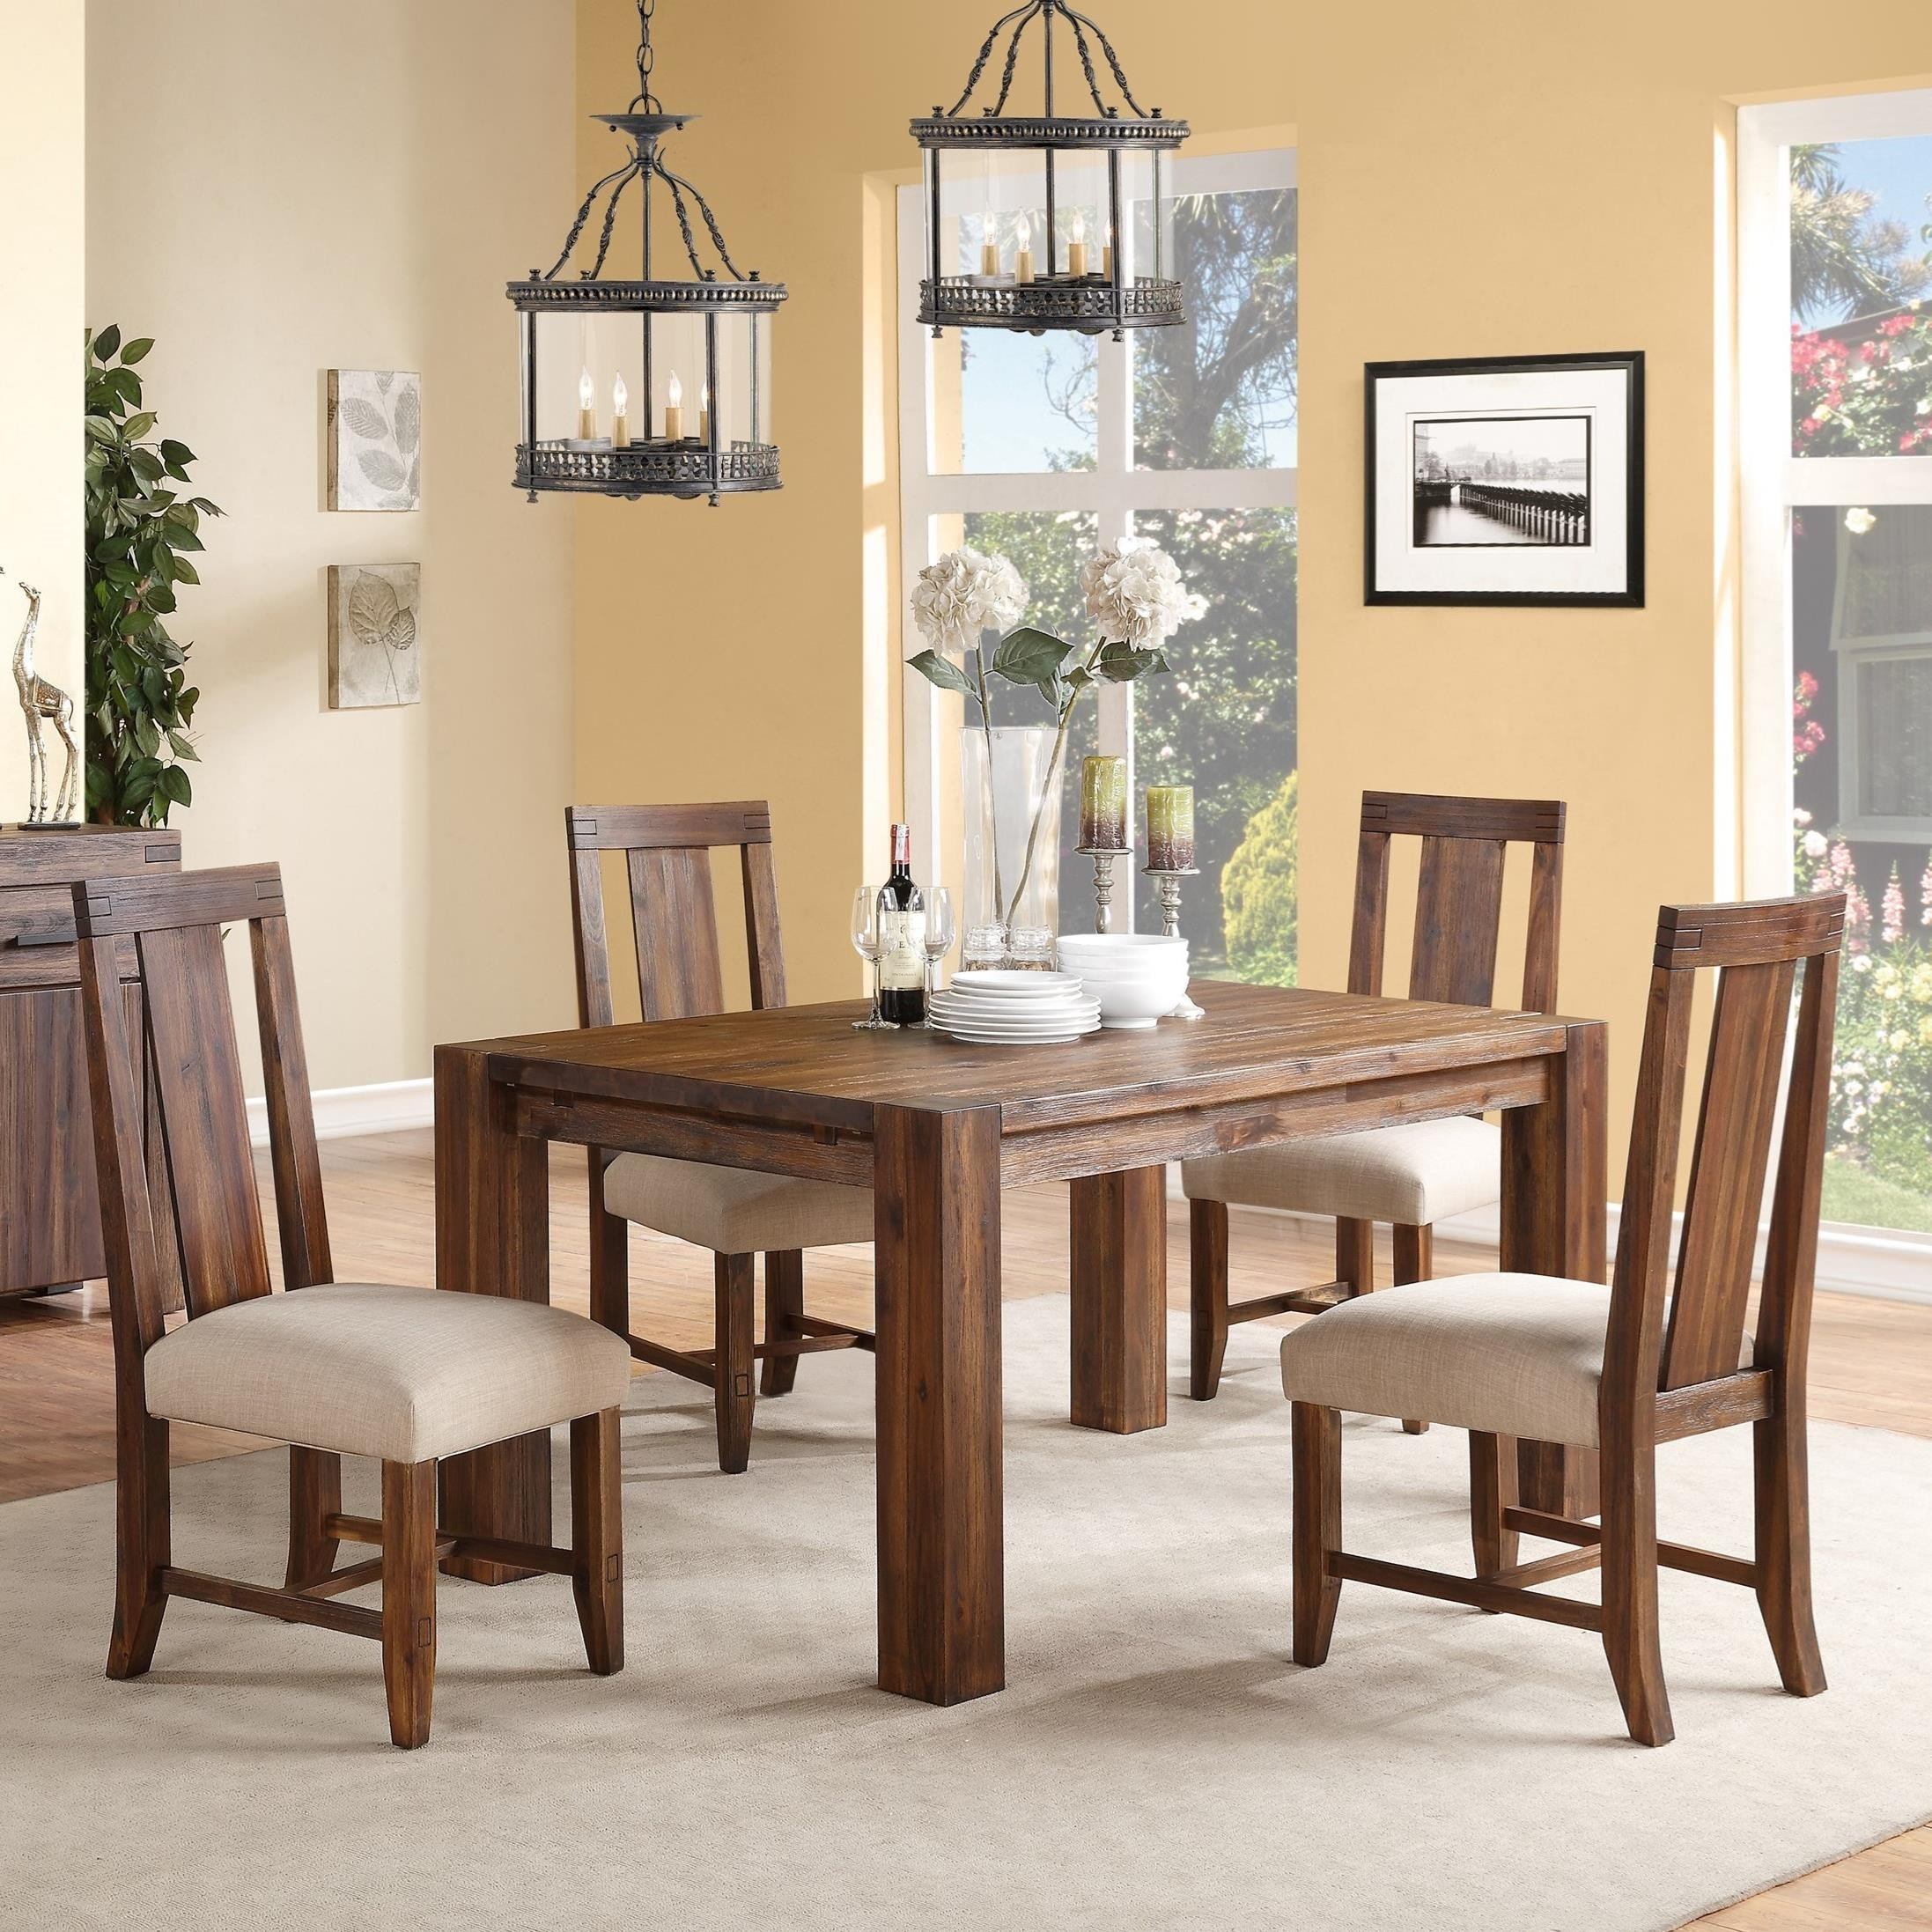 Modus International Meadow 5 Piece Dining Package - Item Number: 3F4161+4x3F4166P